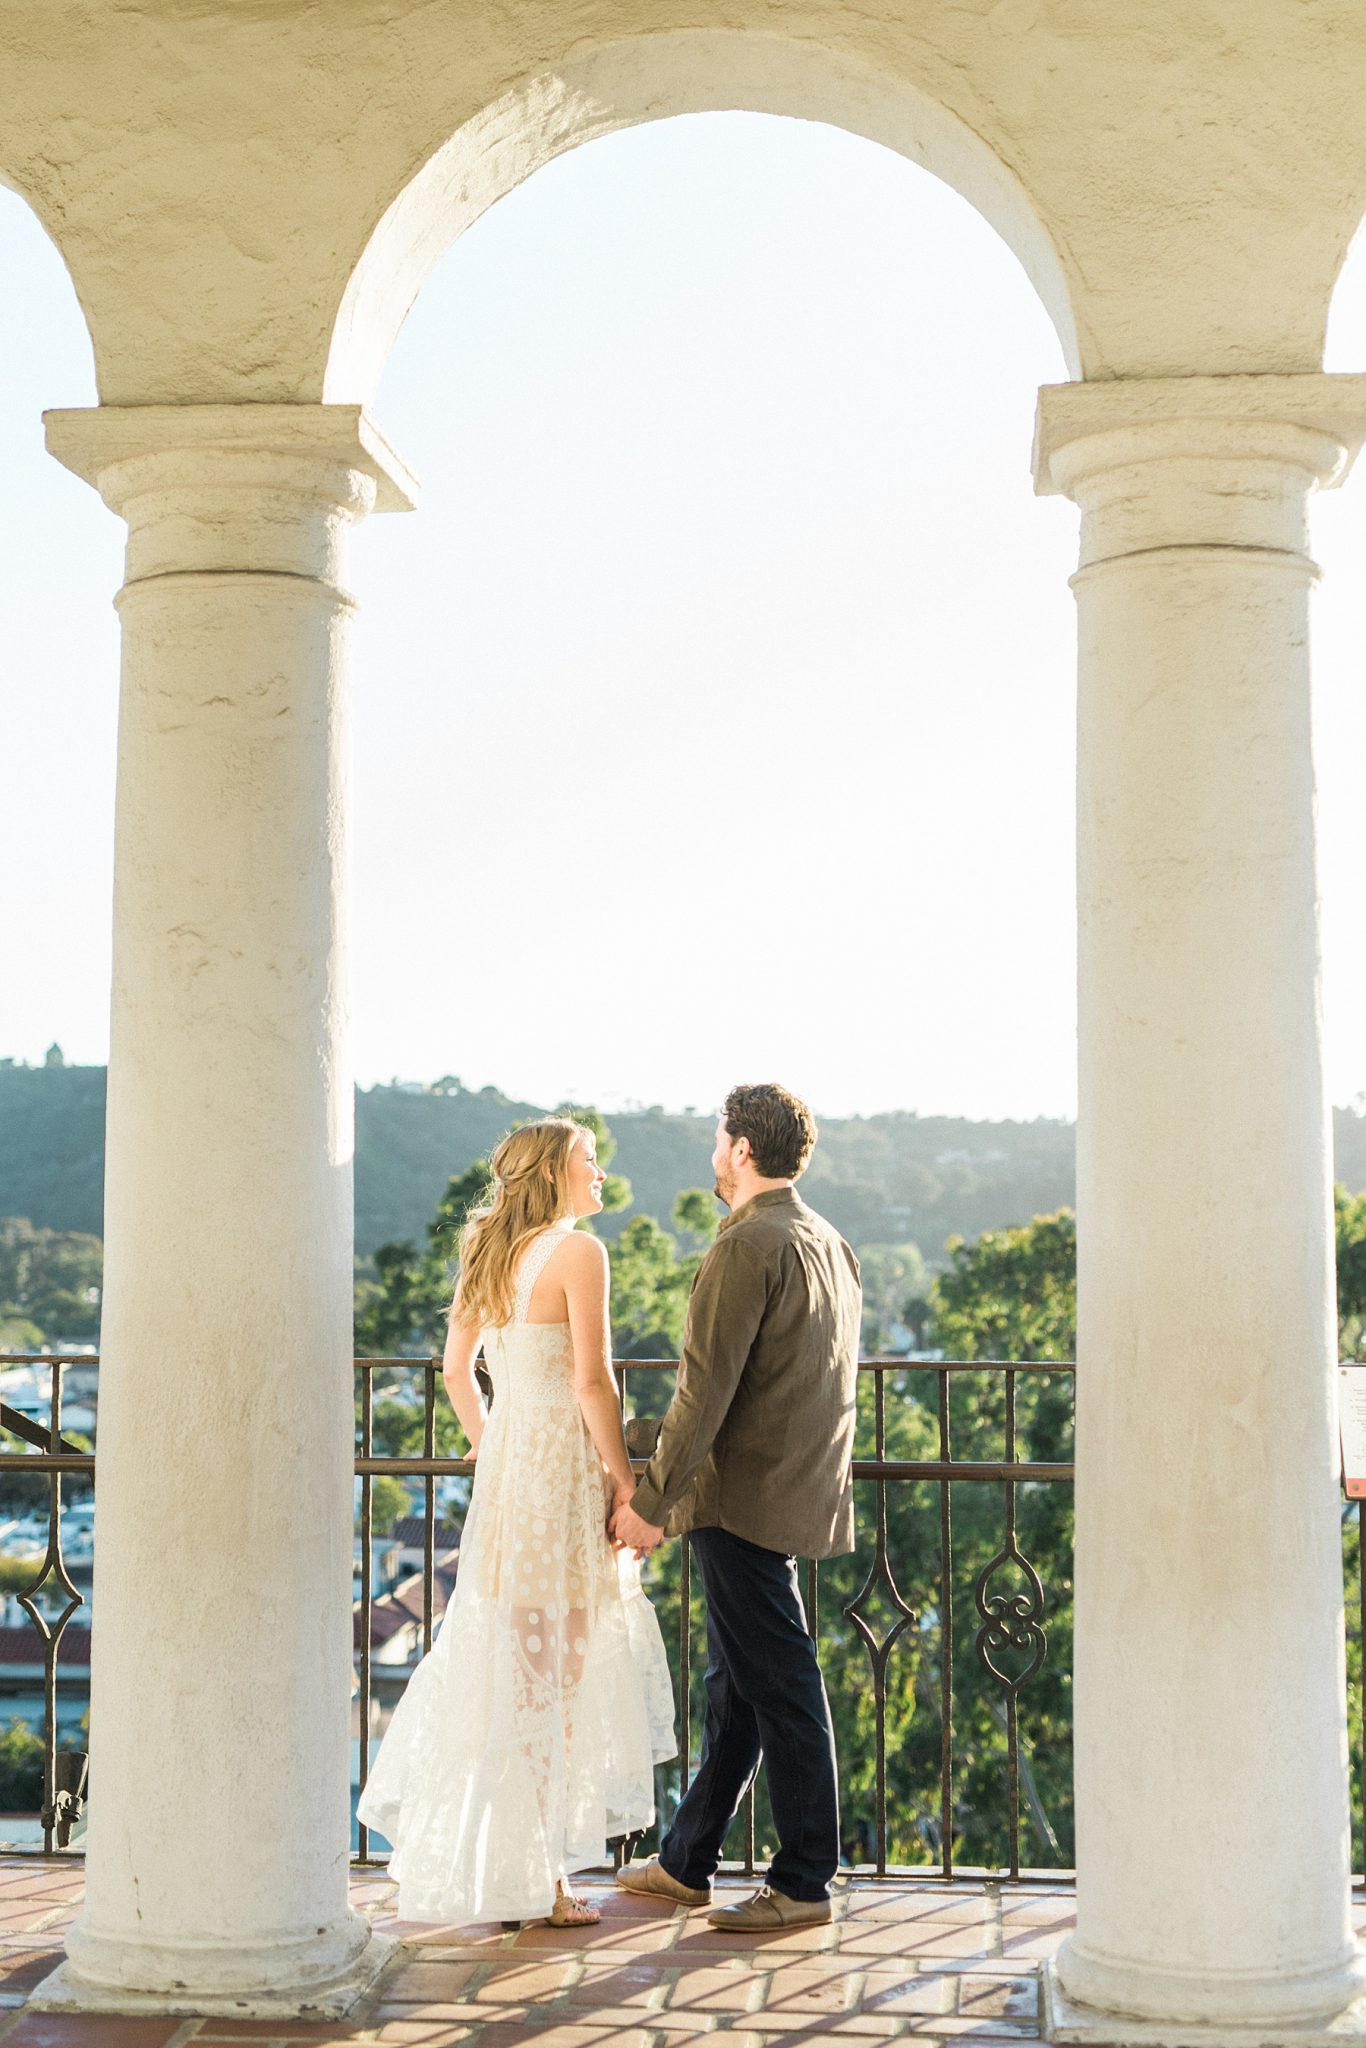 Santa Barbara Wedding Photographer, Santa Barbara Wedding Photos, Santa Barbara Wedding, Wedding Advice, Engagement Photos, Santa Barbara Engagement Photographer, Why Even Bother With Engagement Photos, Sarah Ellefson Photography